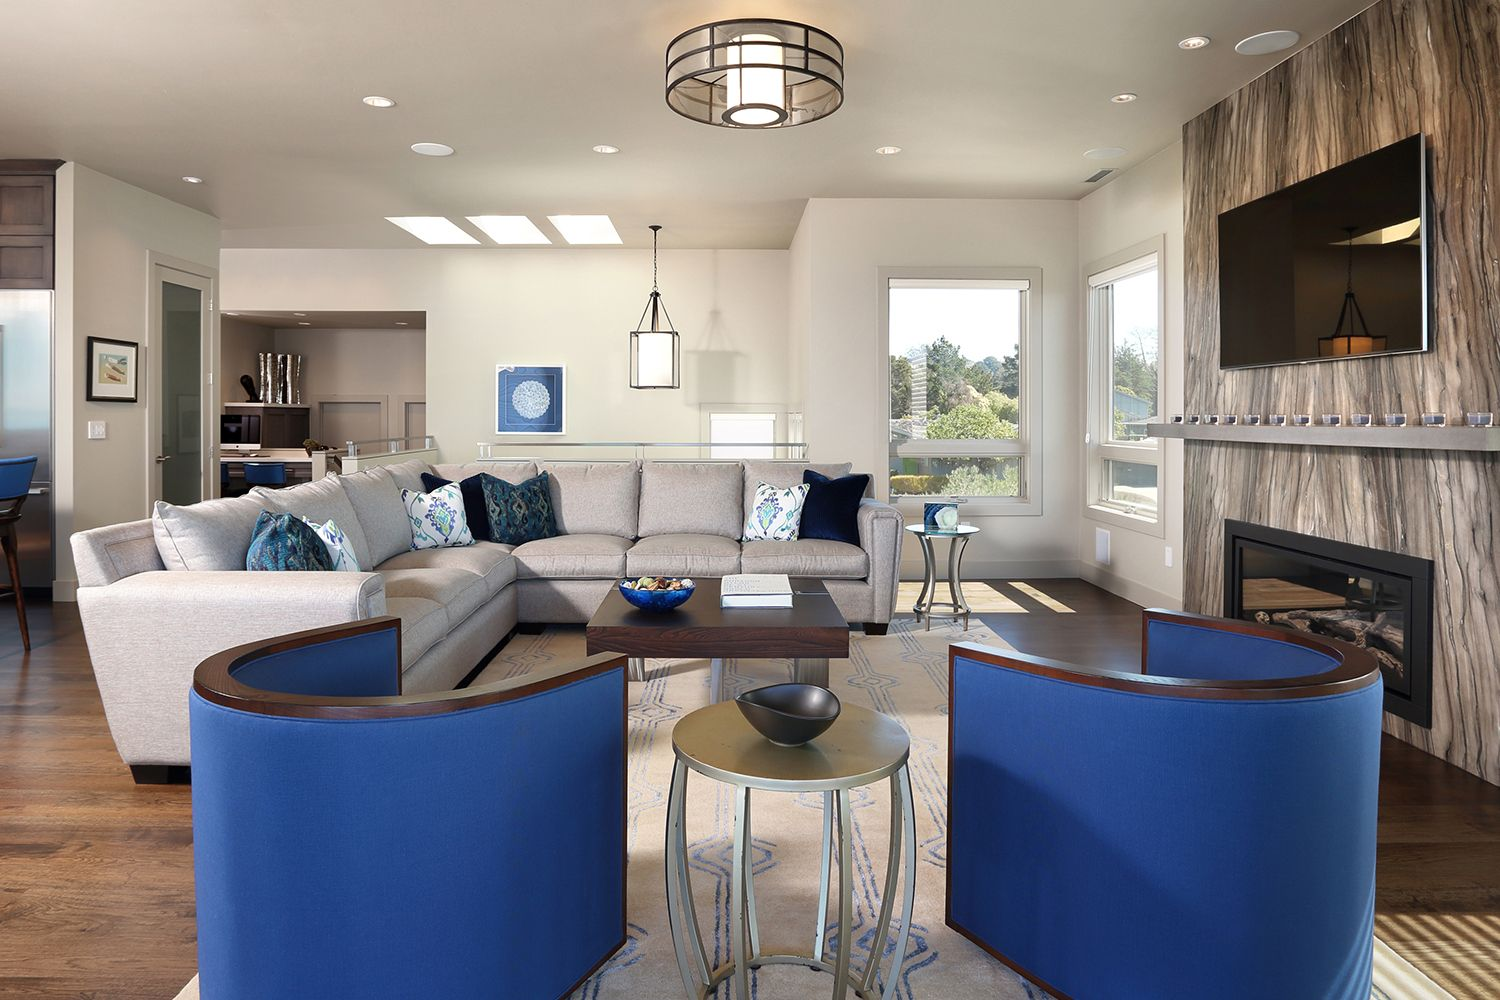 Marine style: use in the interior 55 photos